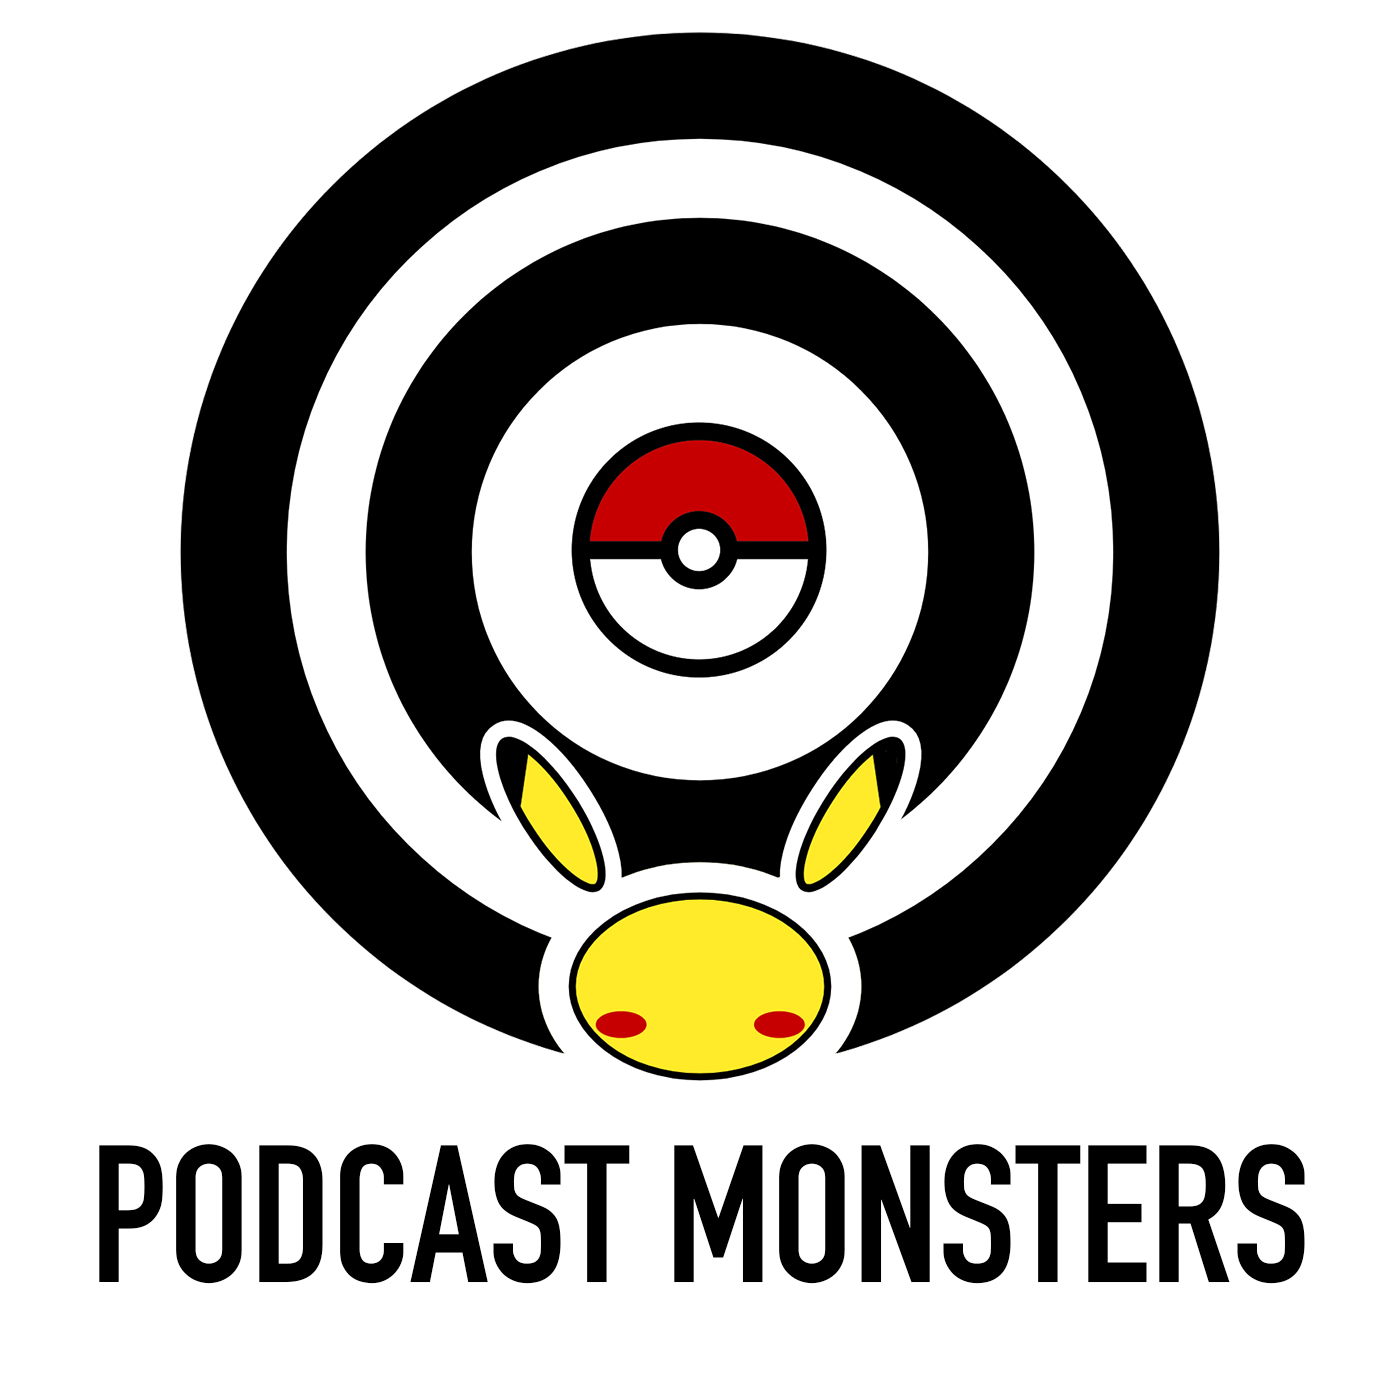 Podcast Monsters